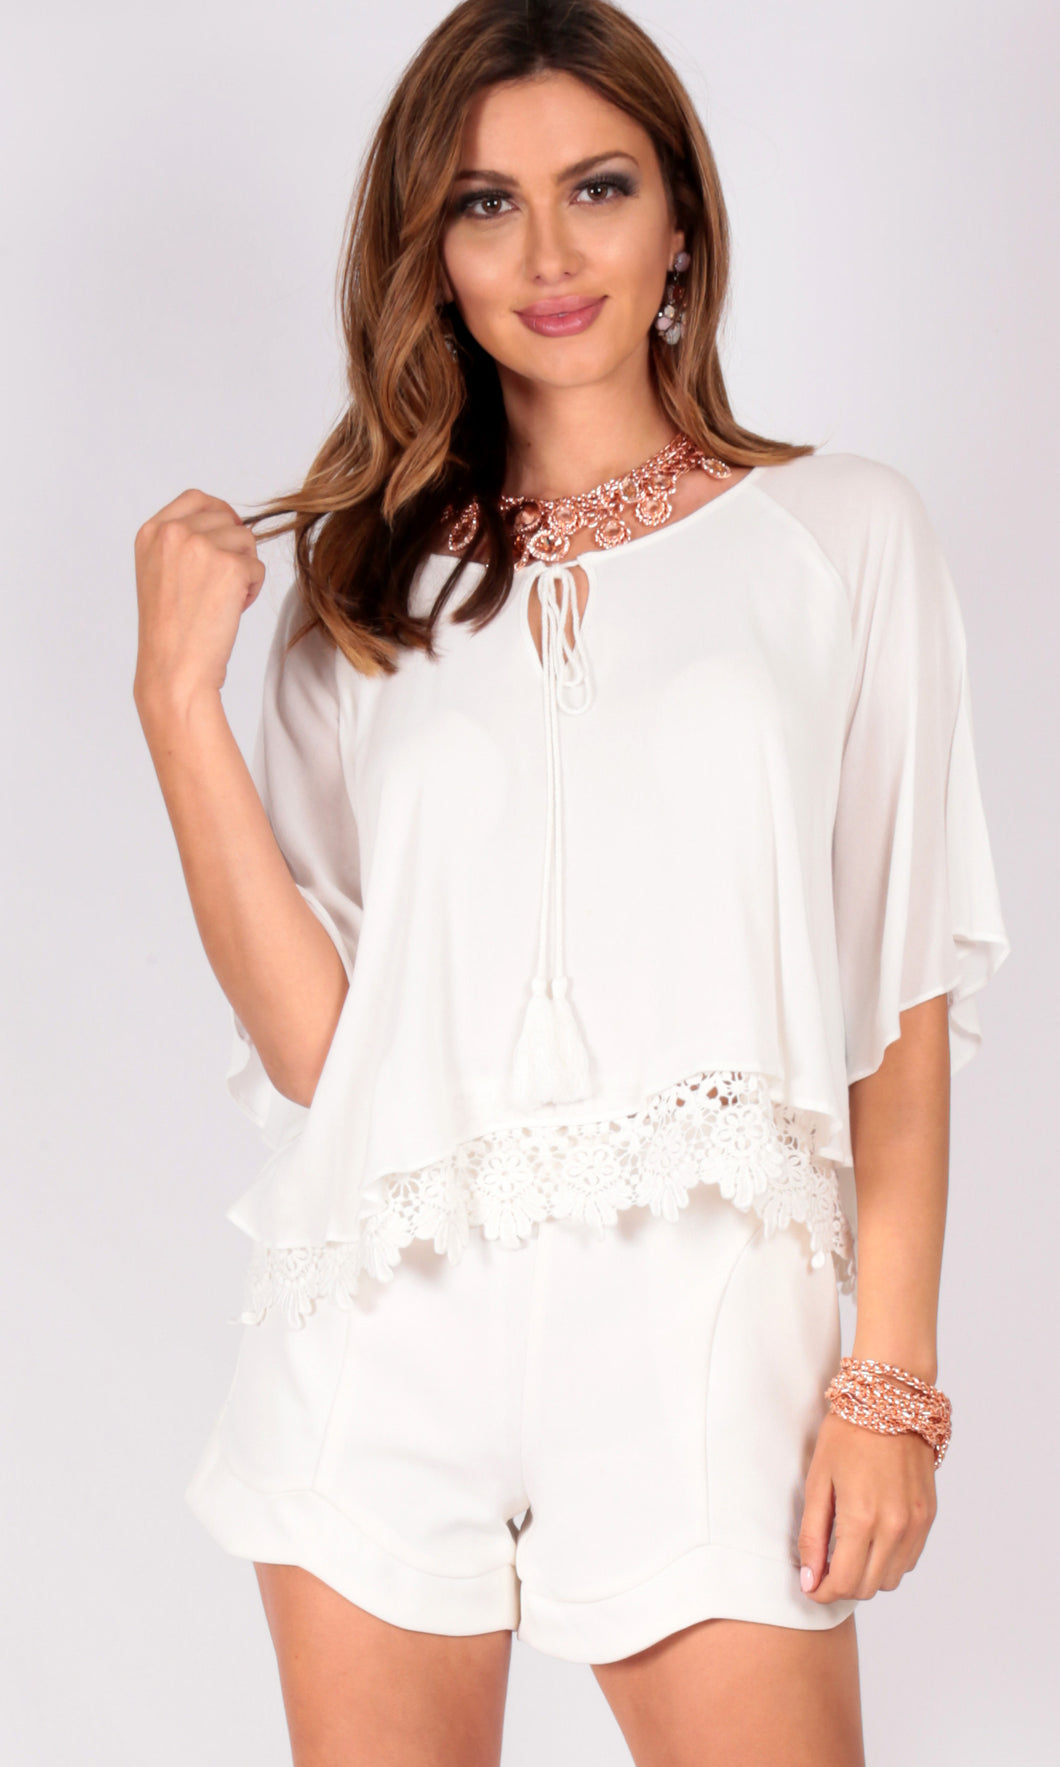 Bat Wing Shirt with Tassel Tie and Lace Detail